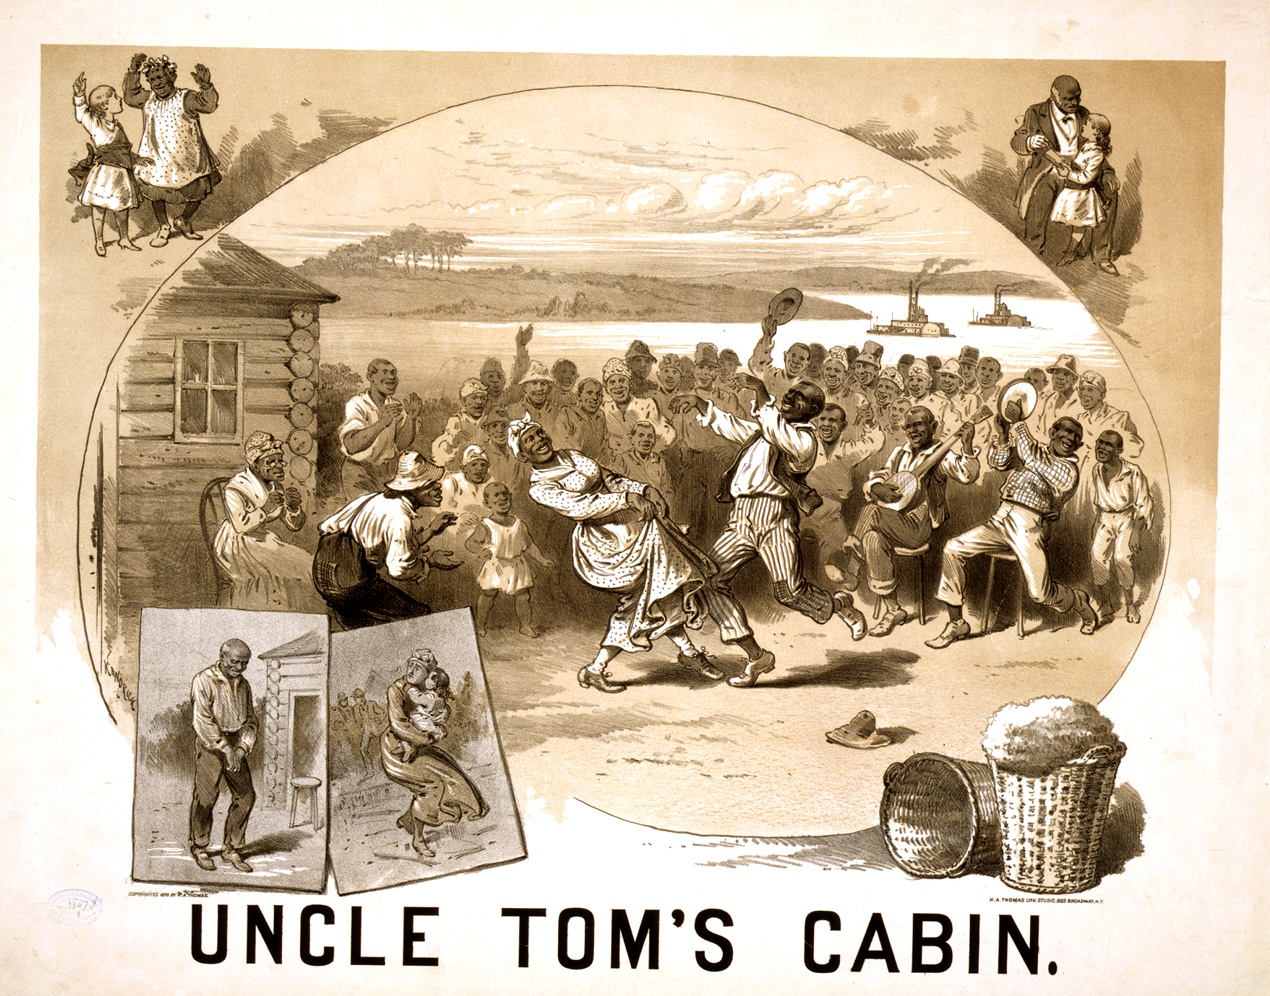 Uncle Tom In Russia In The Liberator on 18th century ballot box